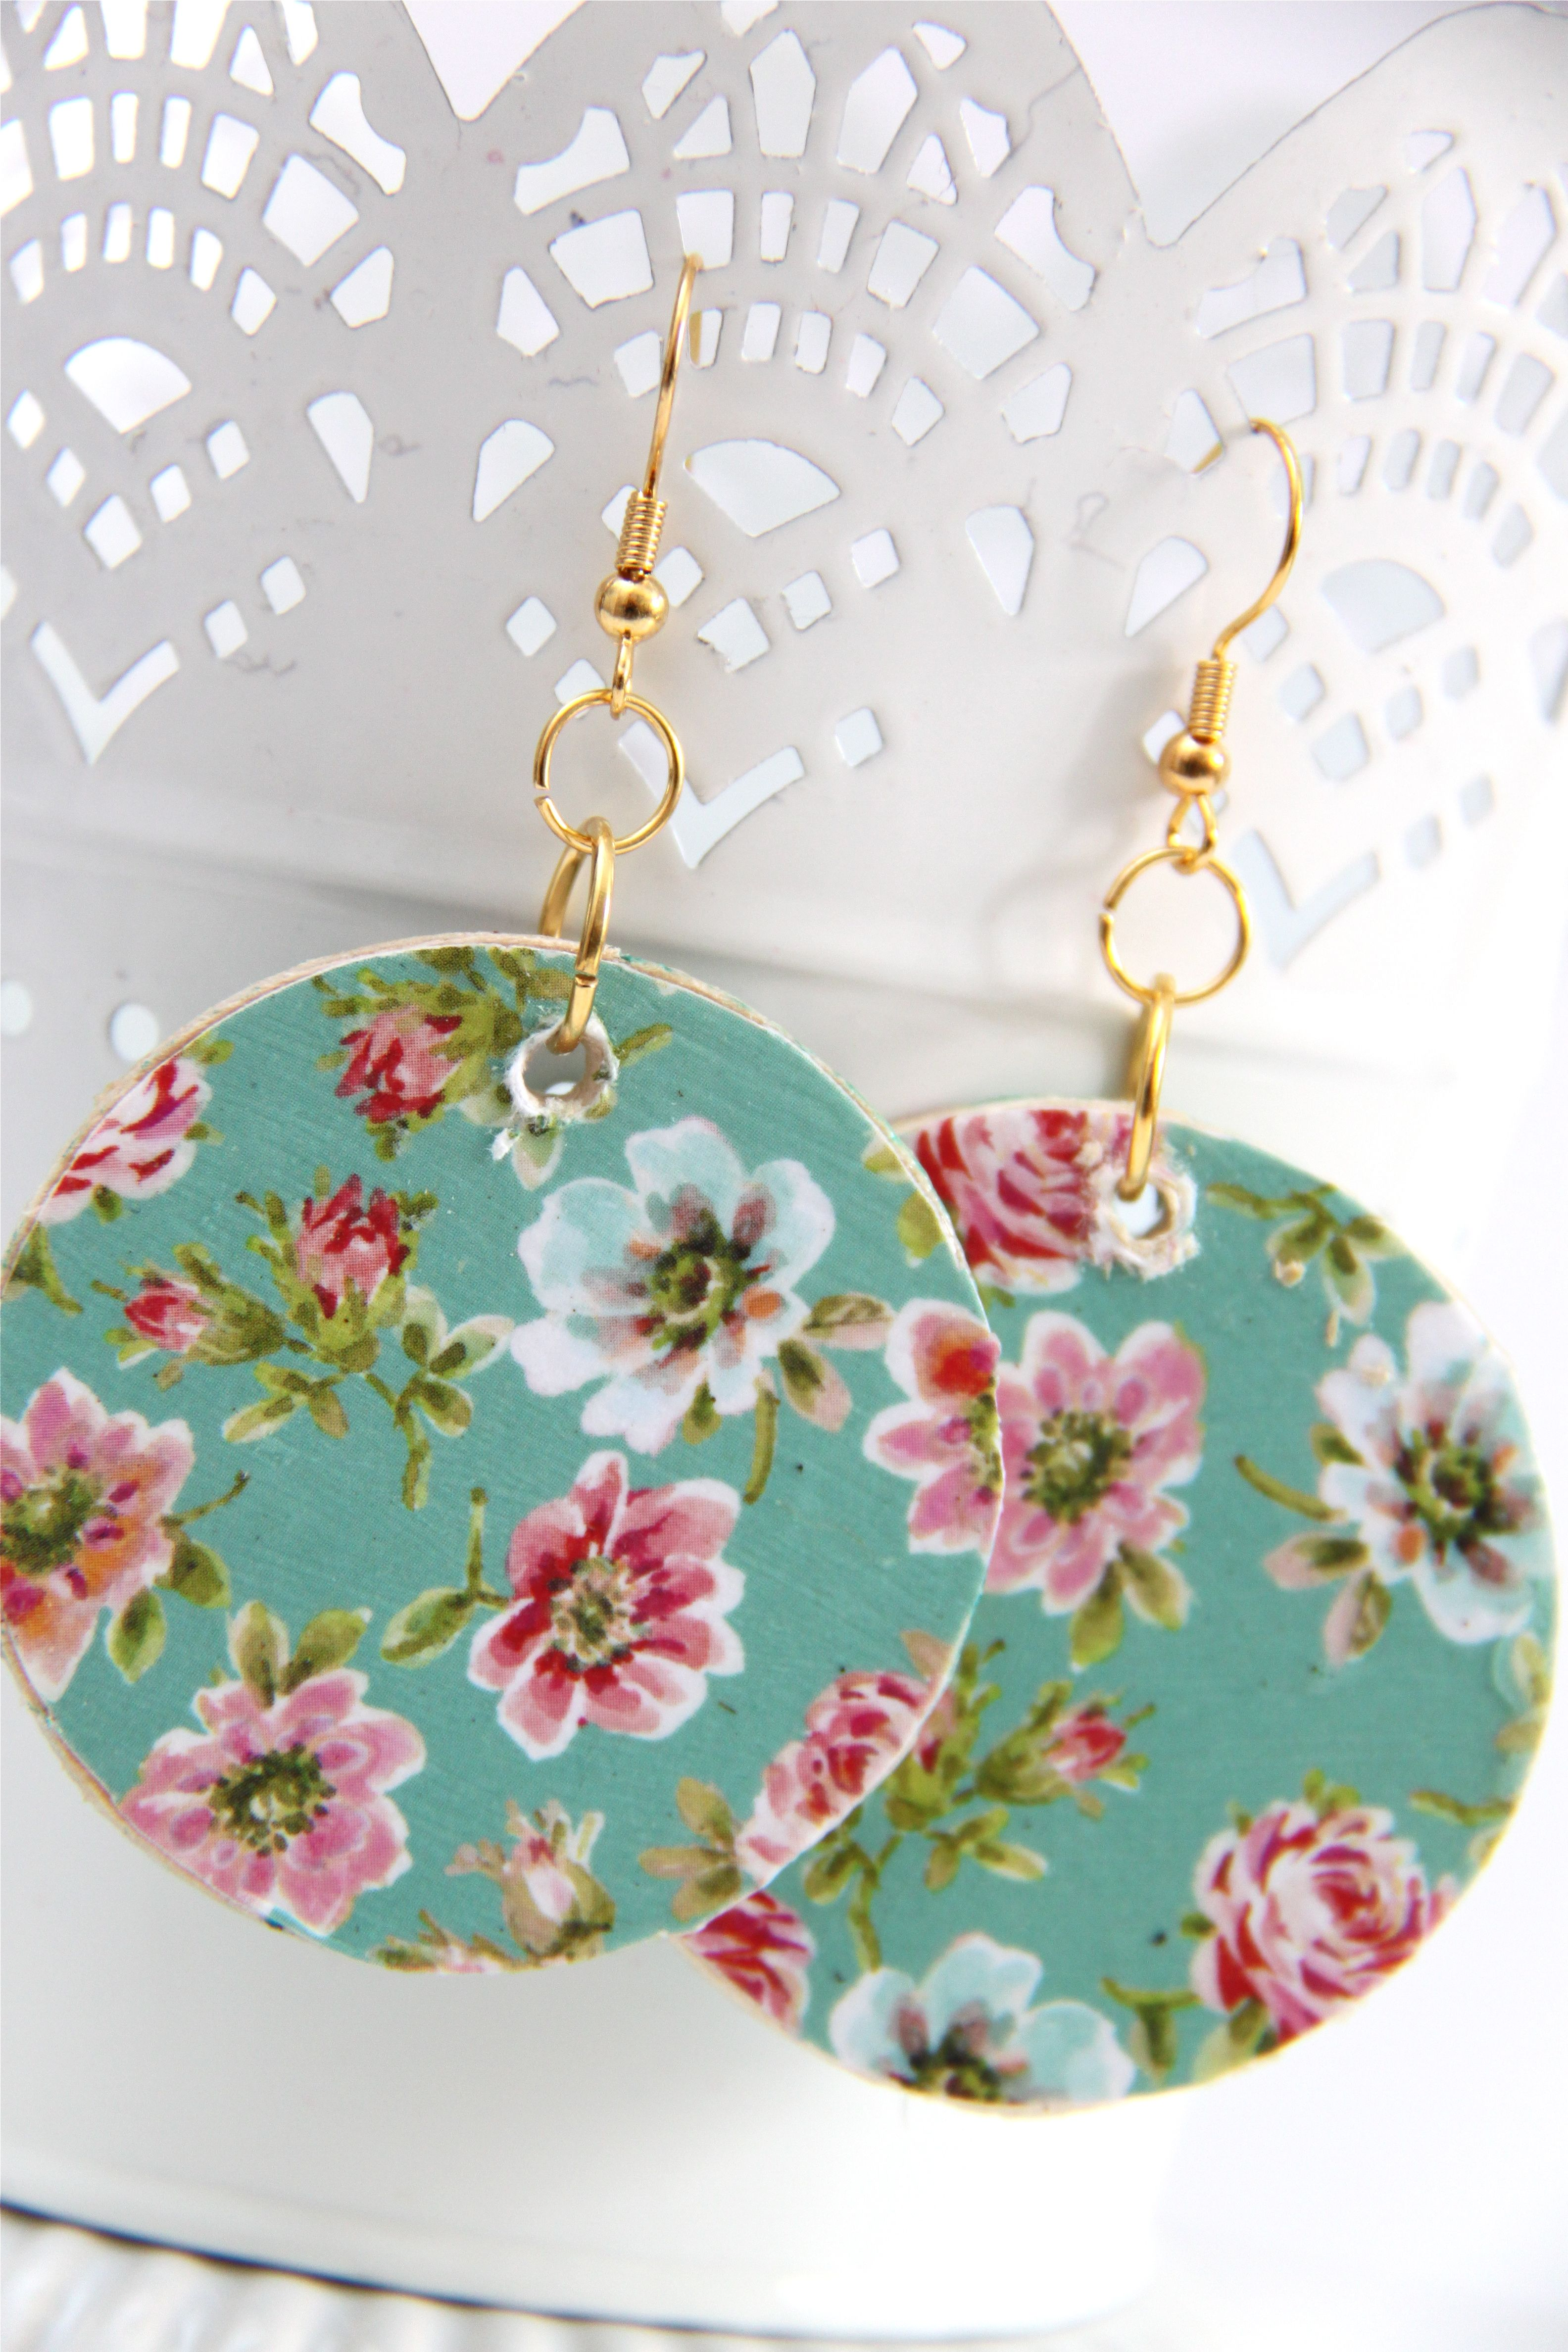 How To Make Floral Wooden Circle Earrings Smashed Peas Carrots Fabric Earrings Jewelry Crafts Diy Earrings